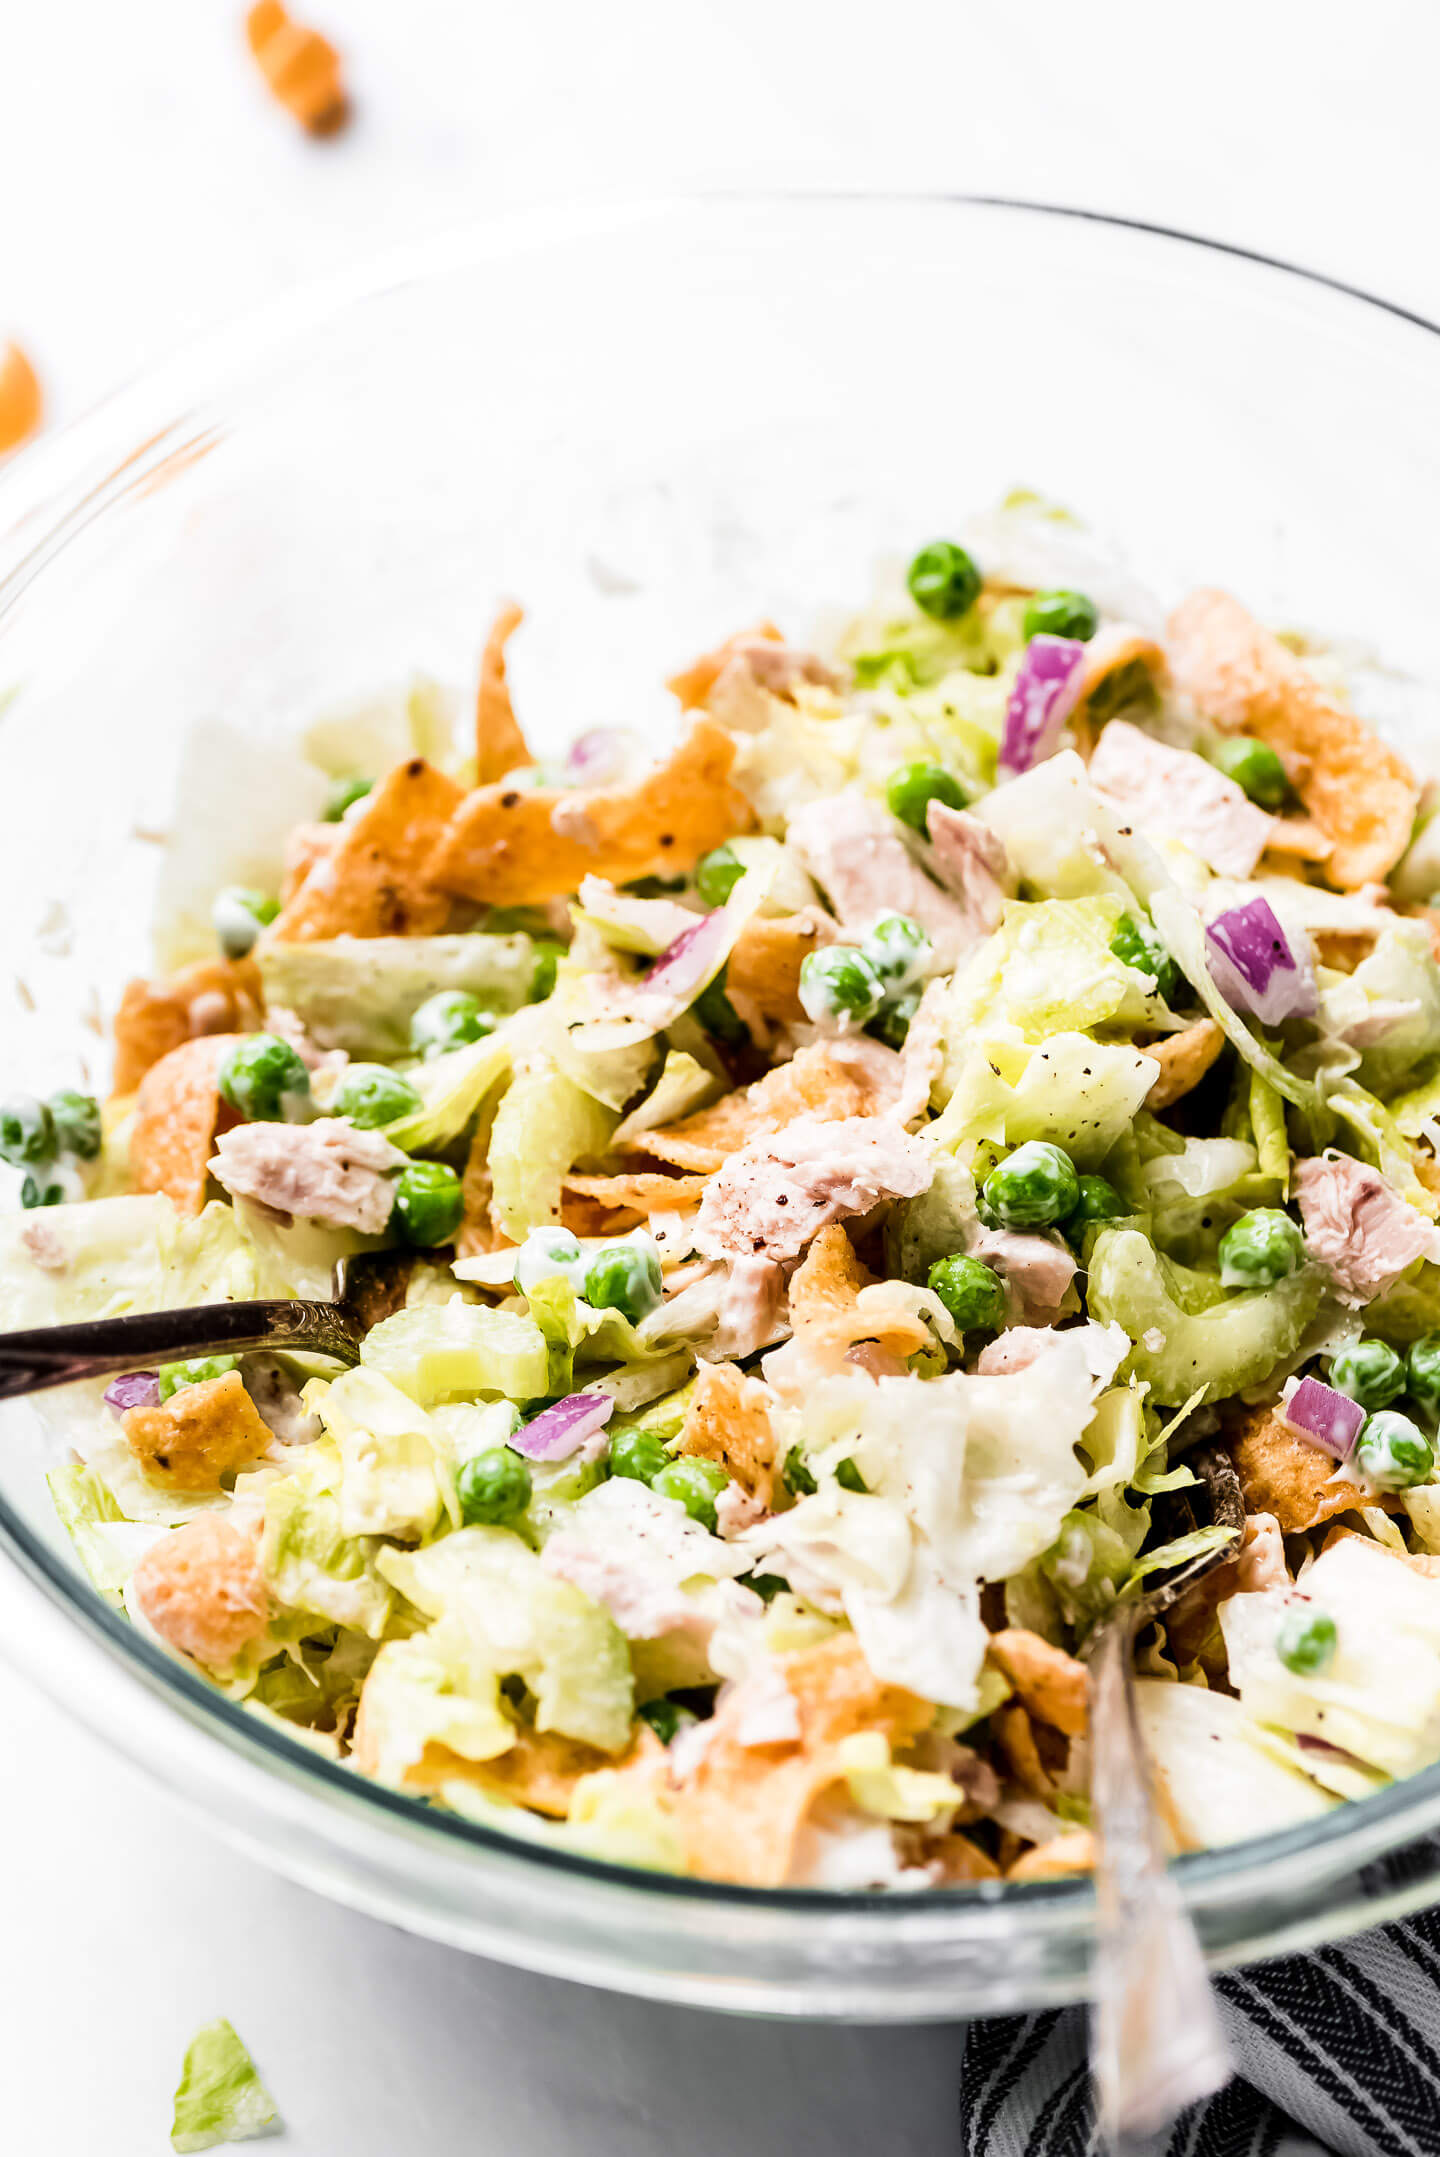 Chopped Salad with tuna, peas, red onions, lettuce, and Fritos.